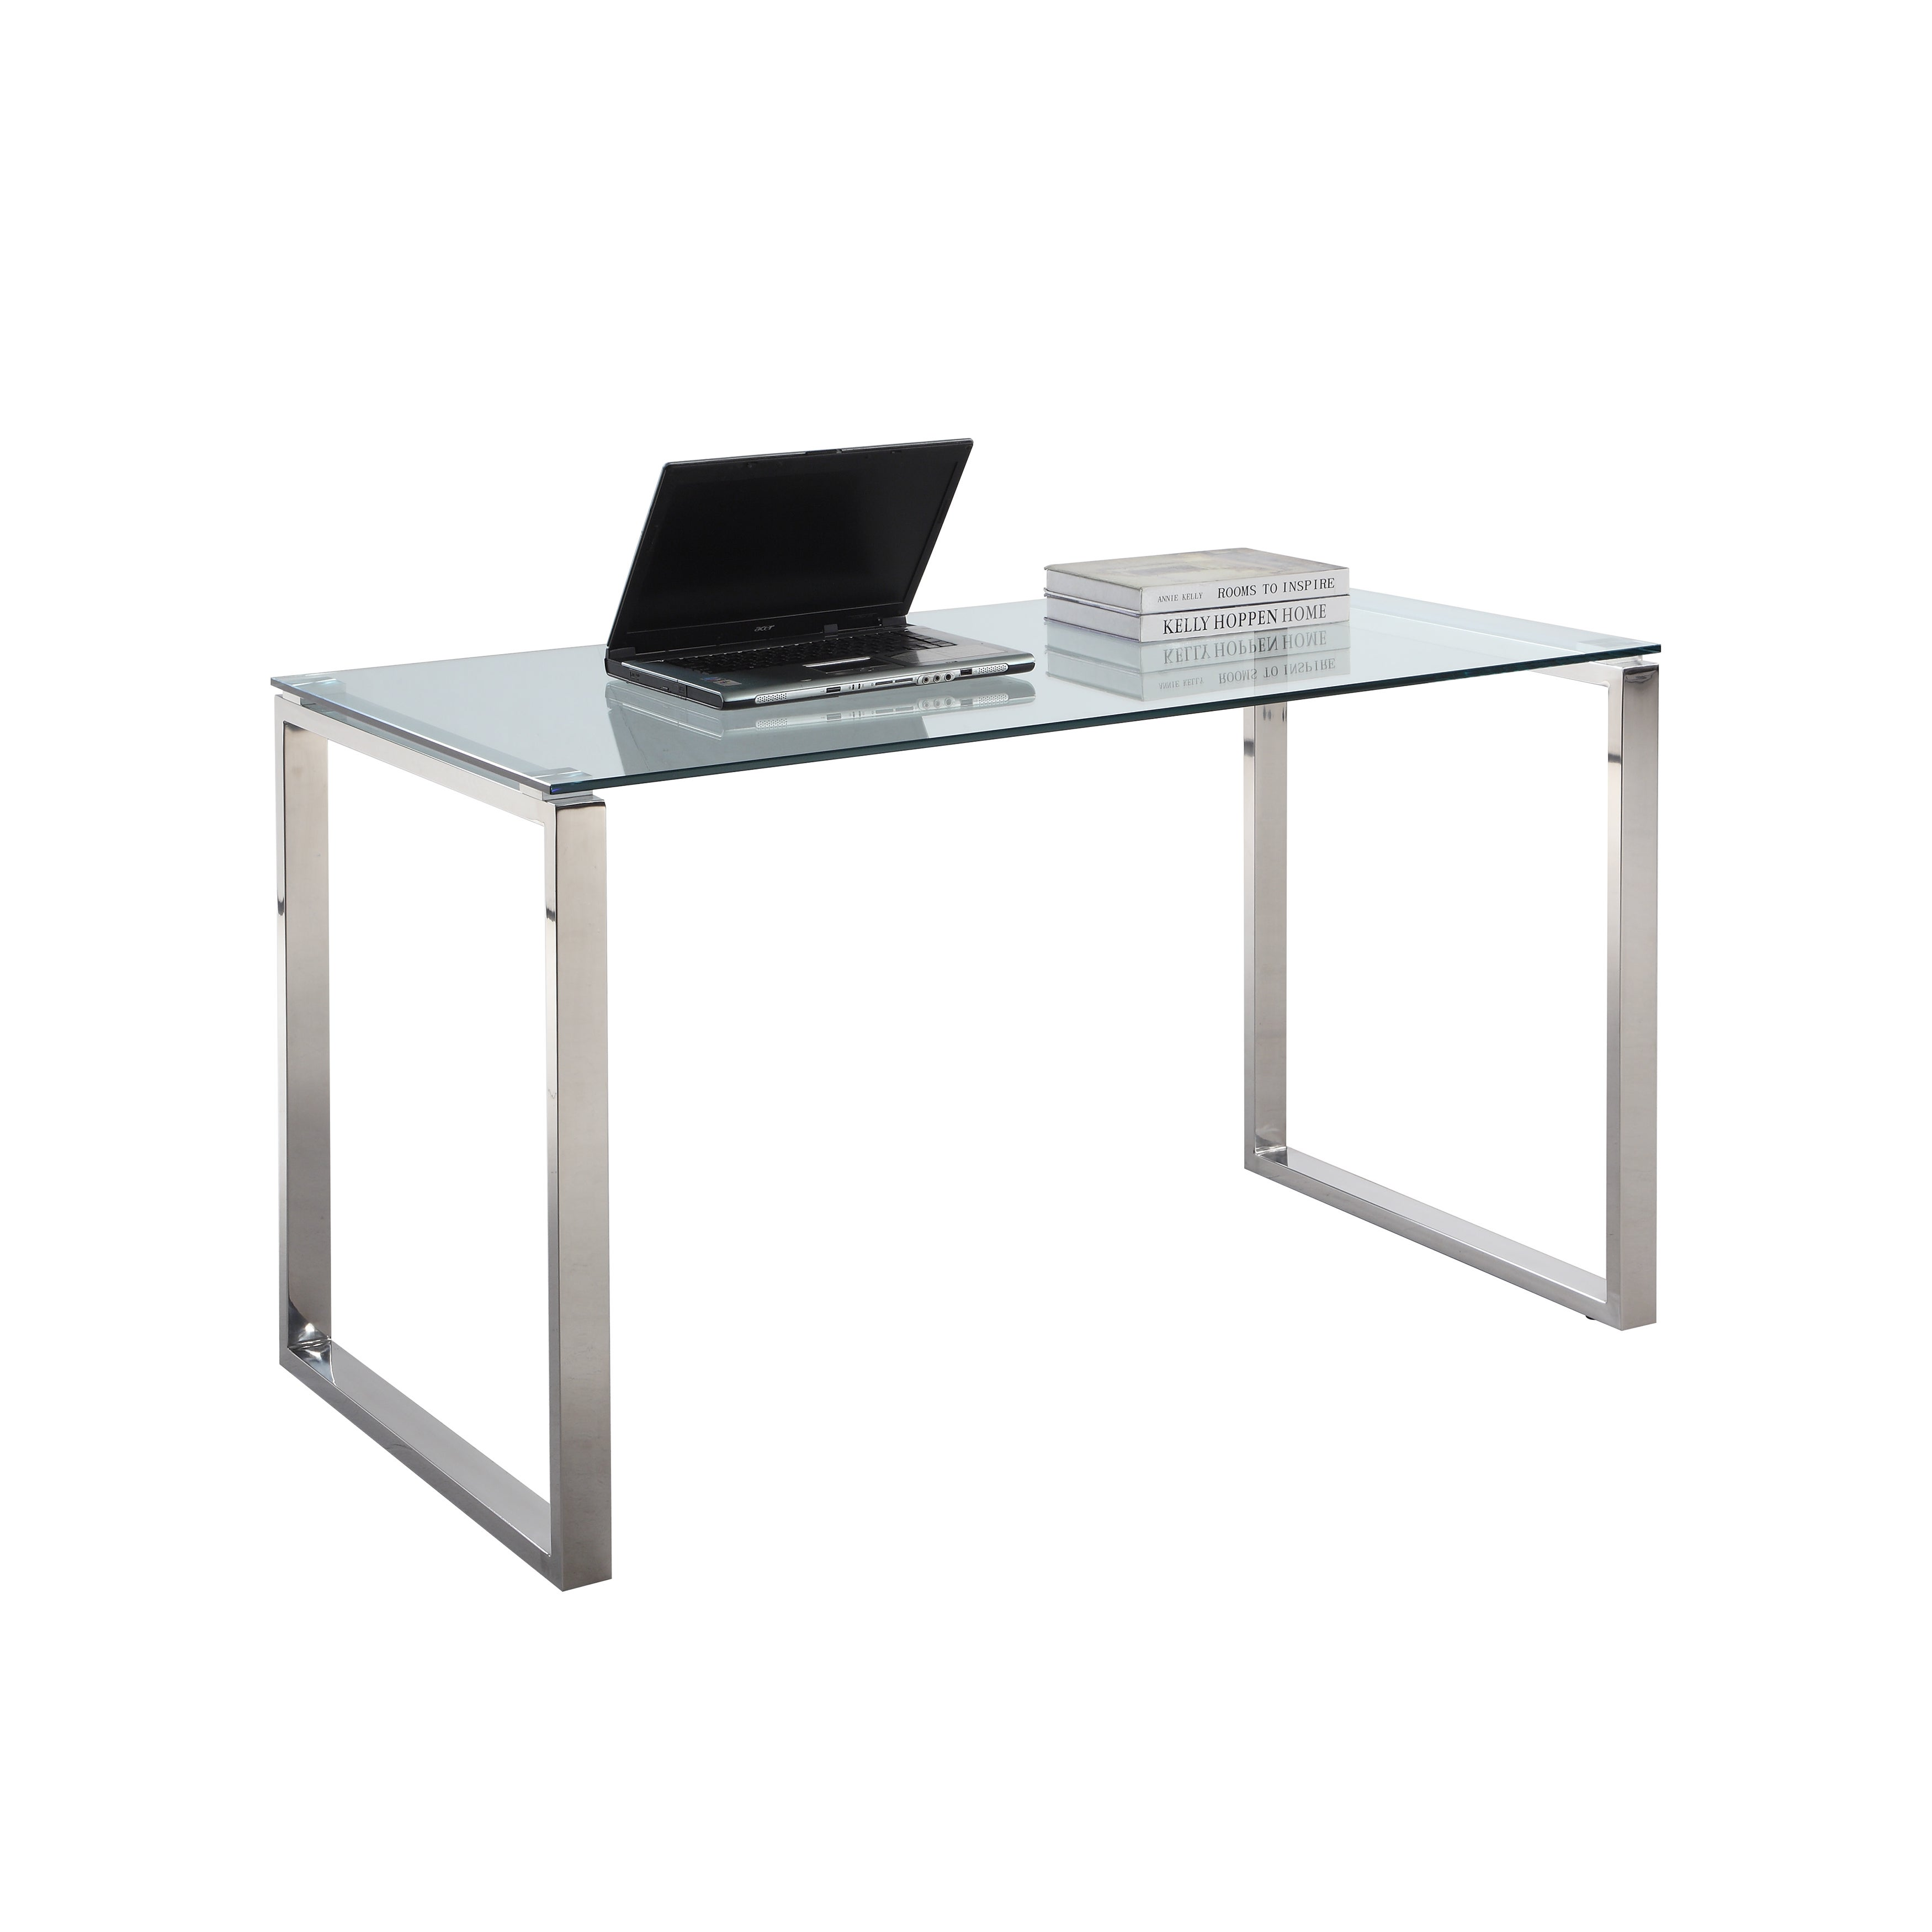 Shop somette gloss white home office computer desk free shipping today overstock com 10274284